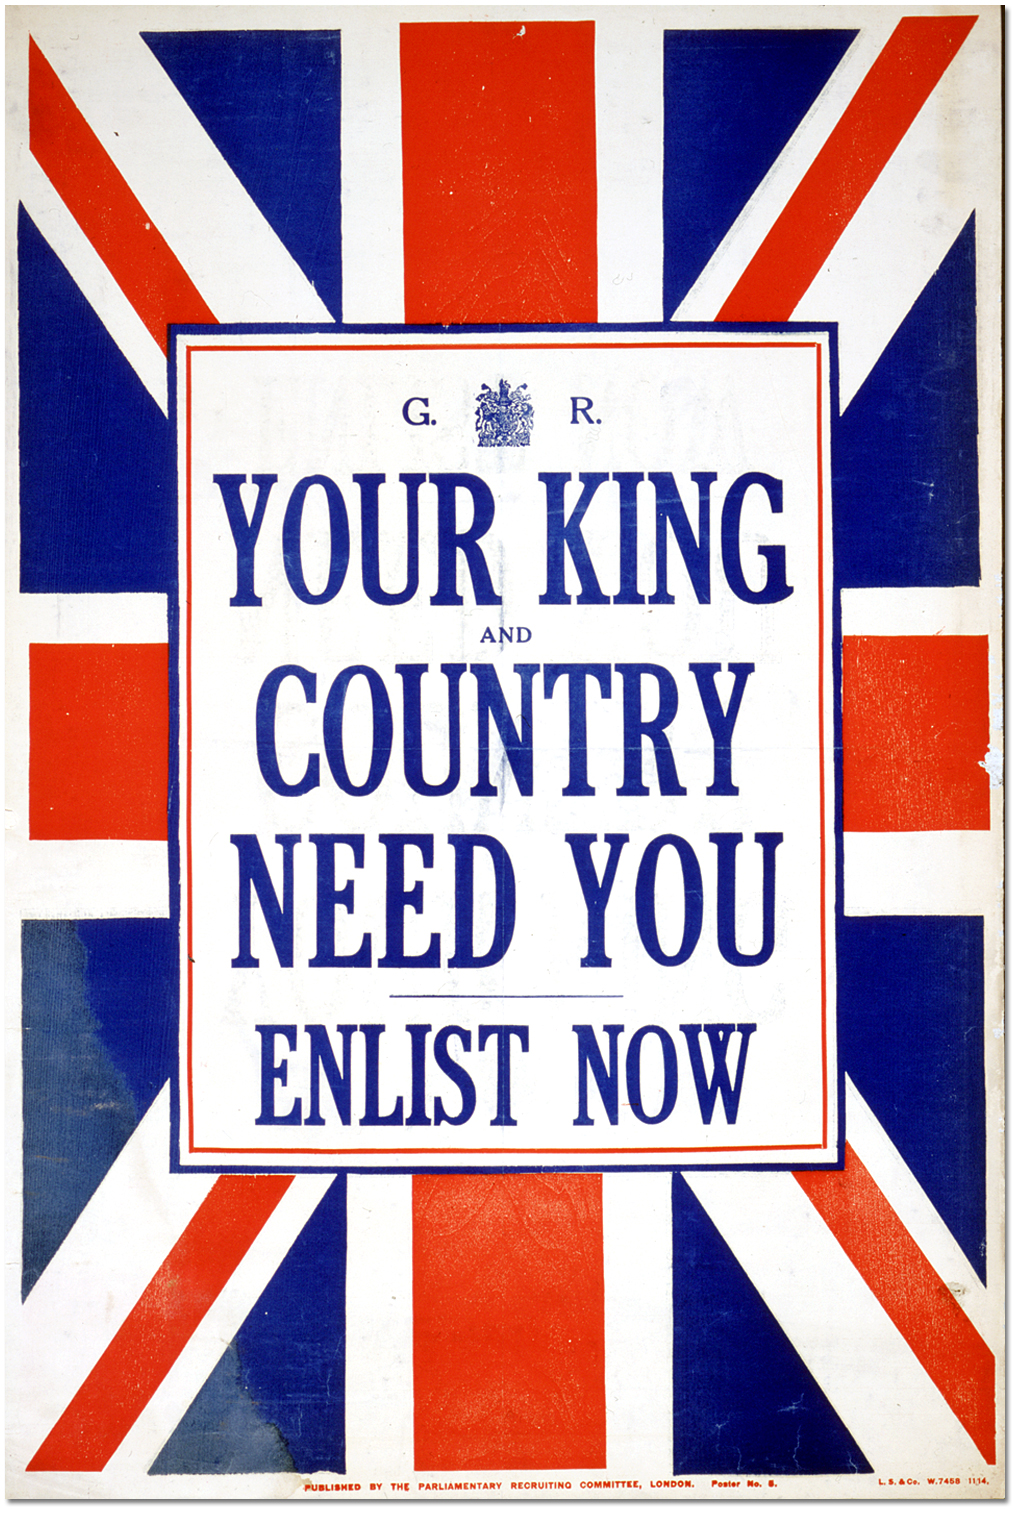 Your King and country need you, enlist now [United Kingdom], [between 1914 and 1918]